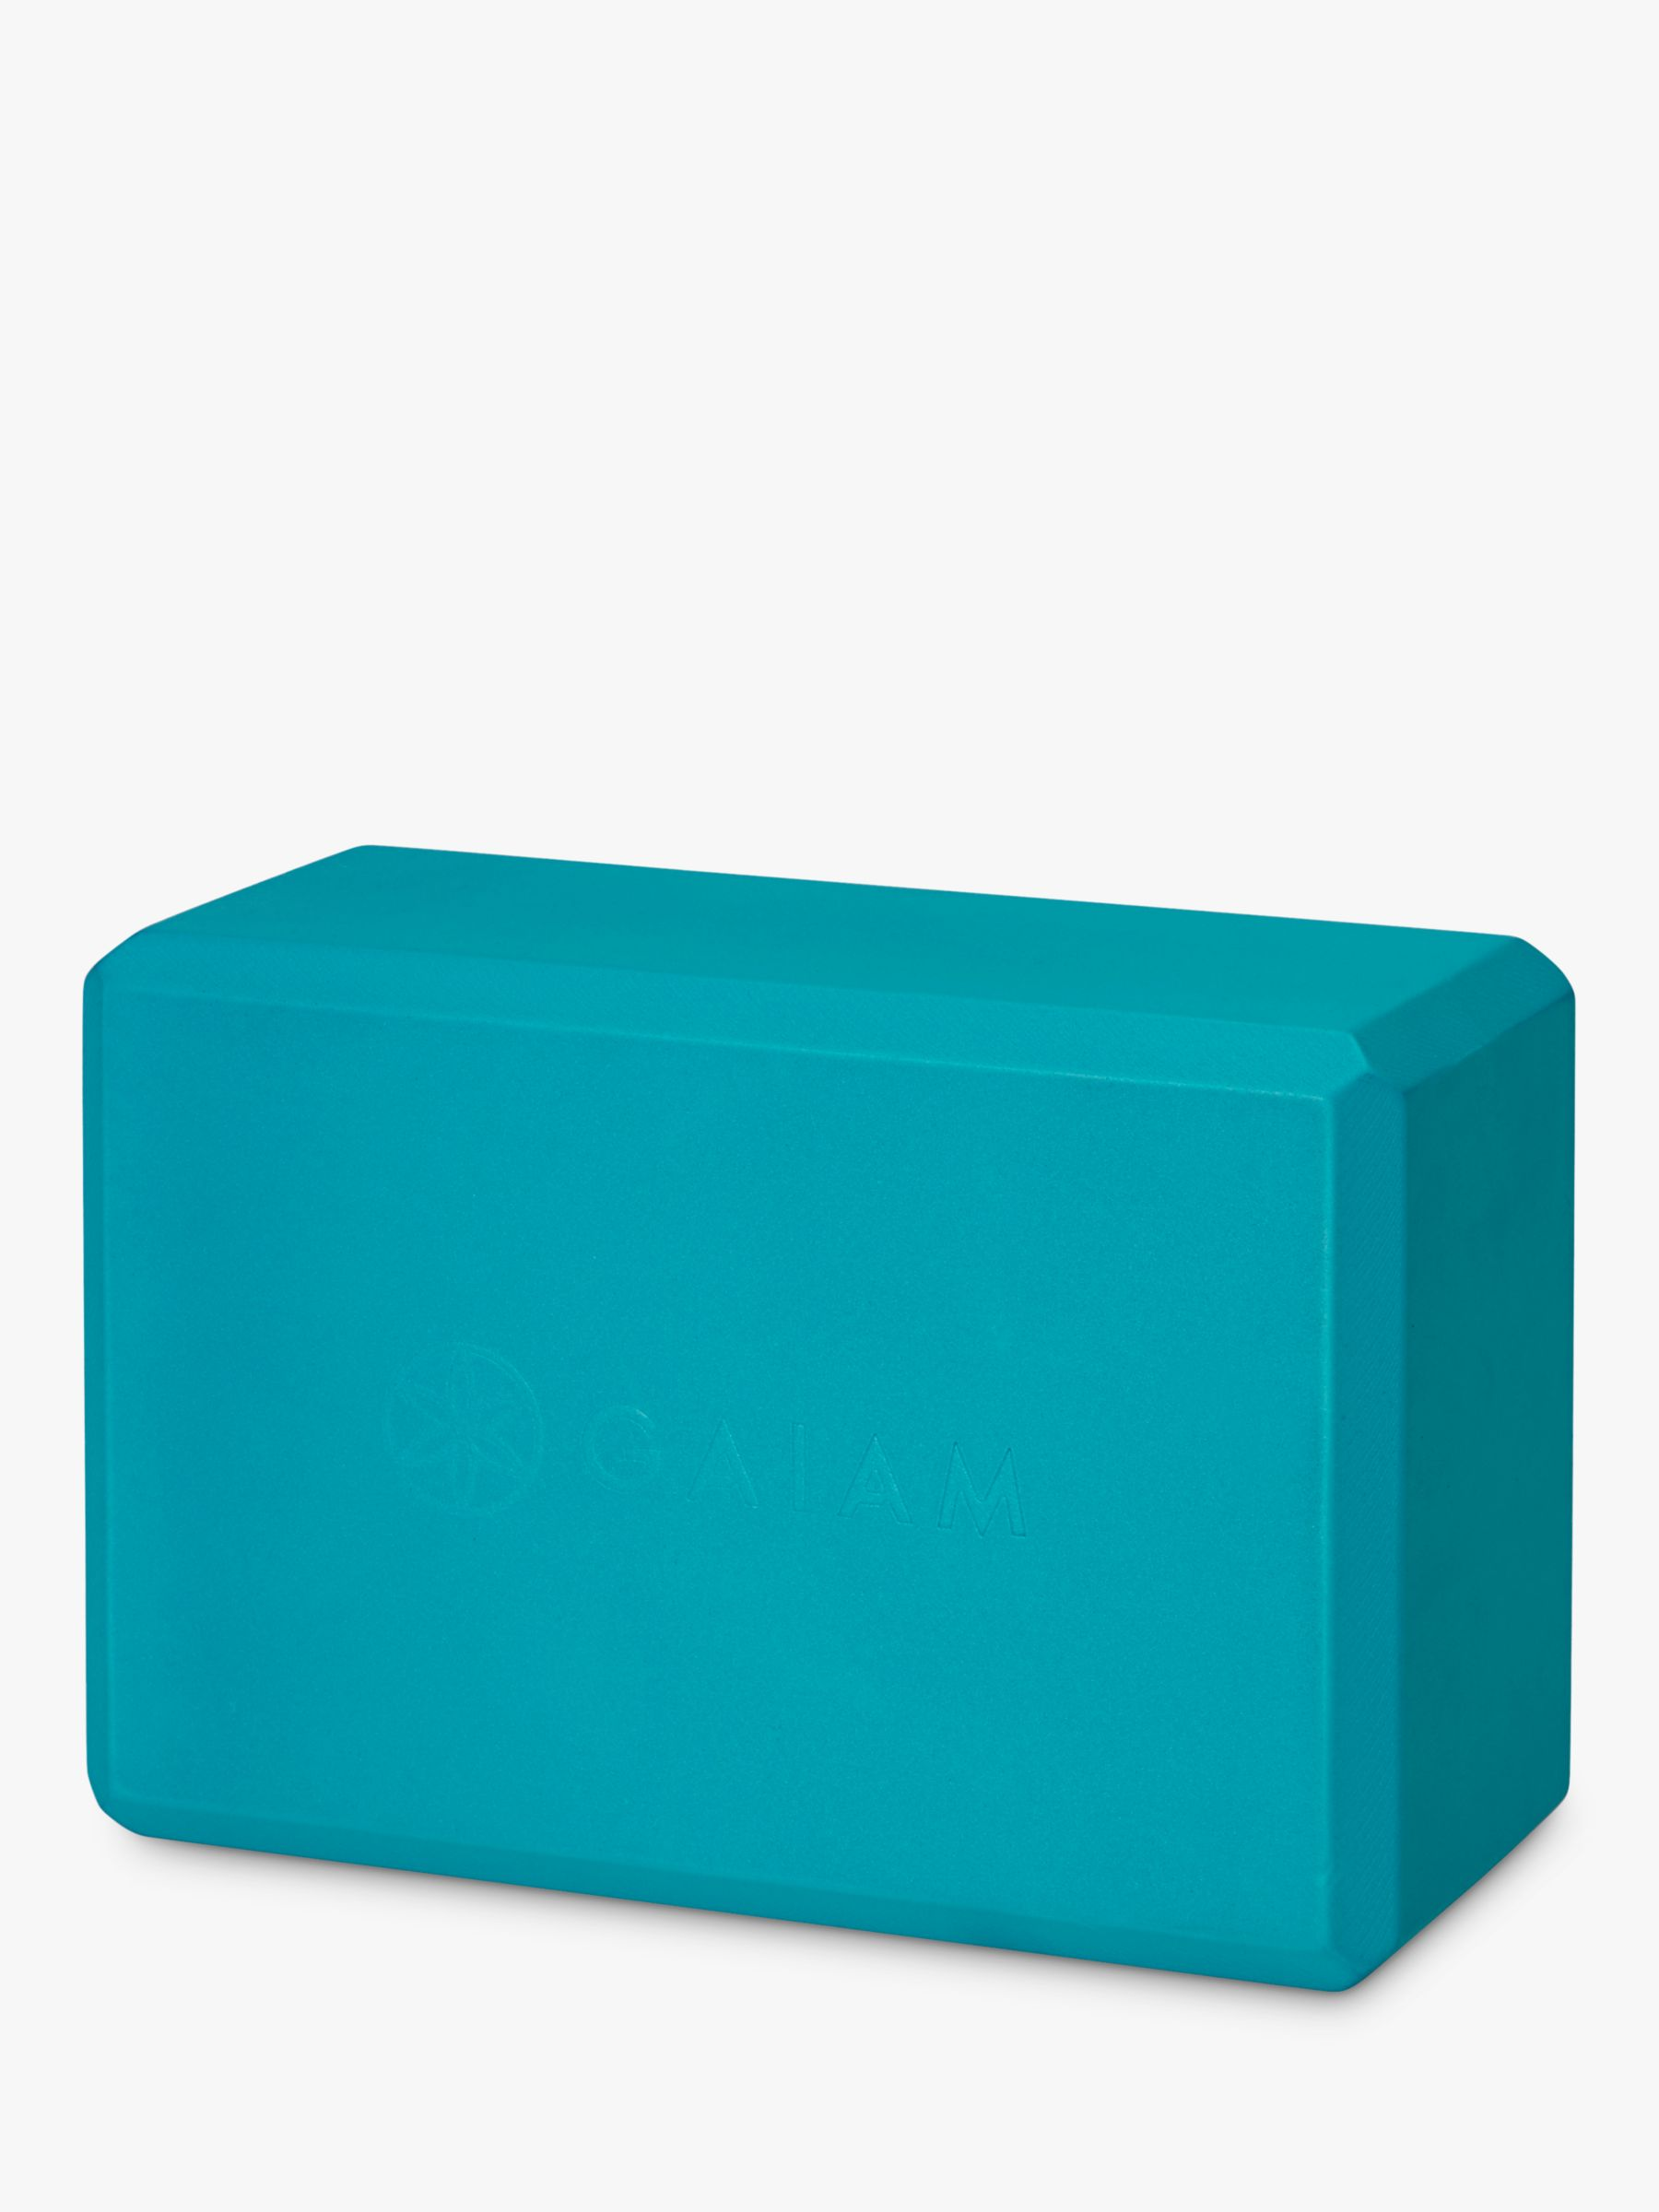 Gaiam Gaiam Essentials Yoga Block, Vivid Blue